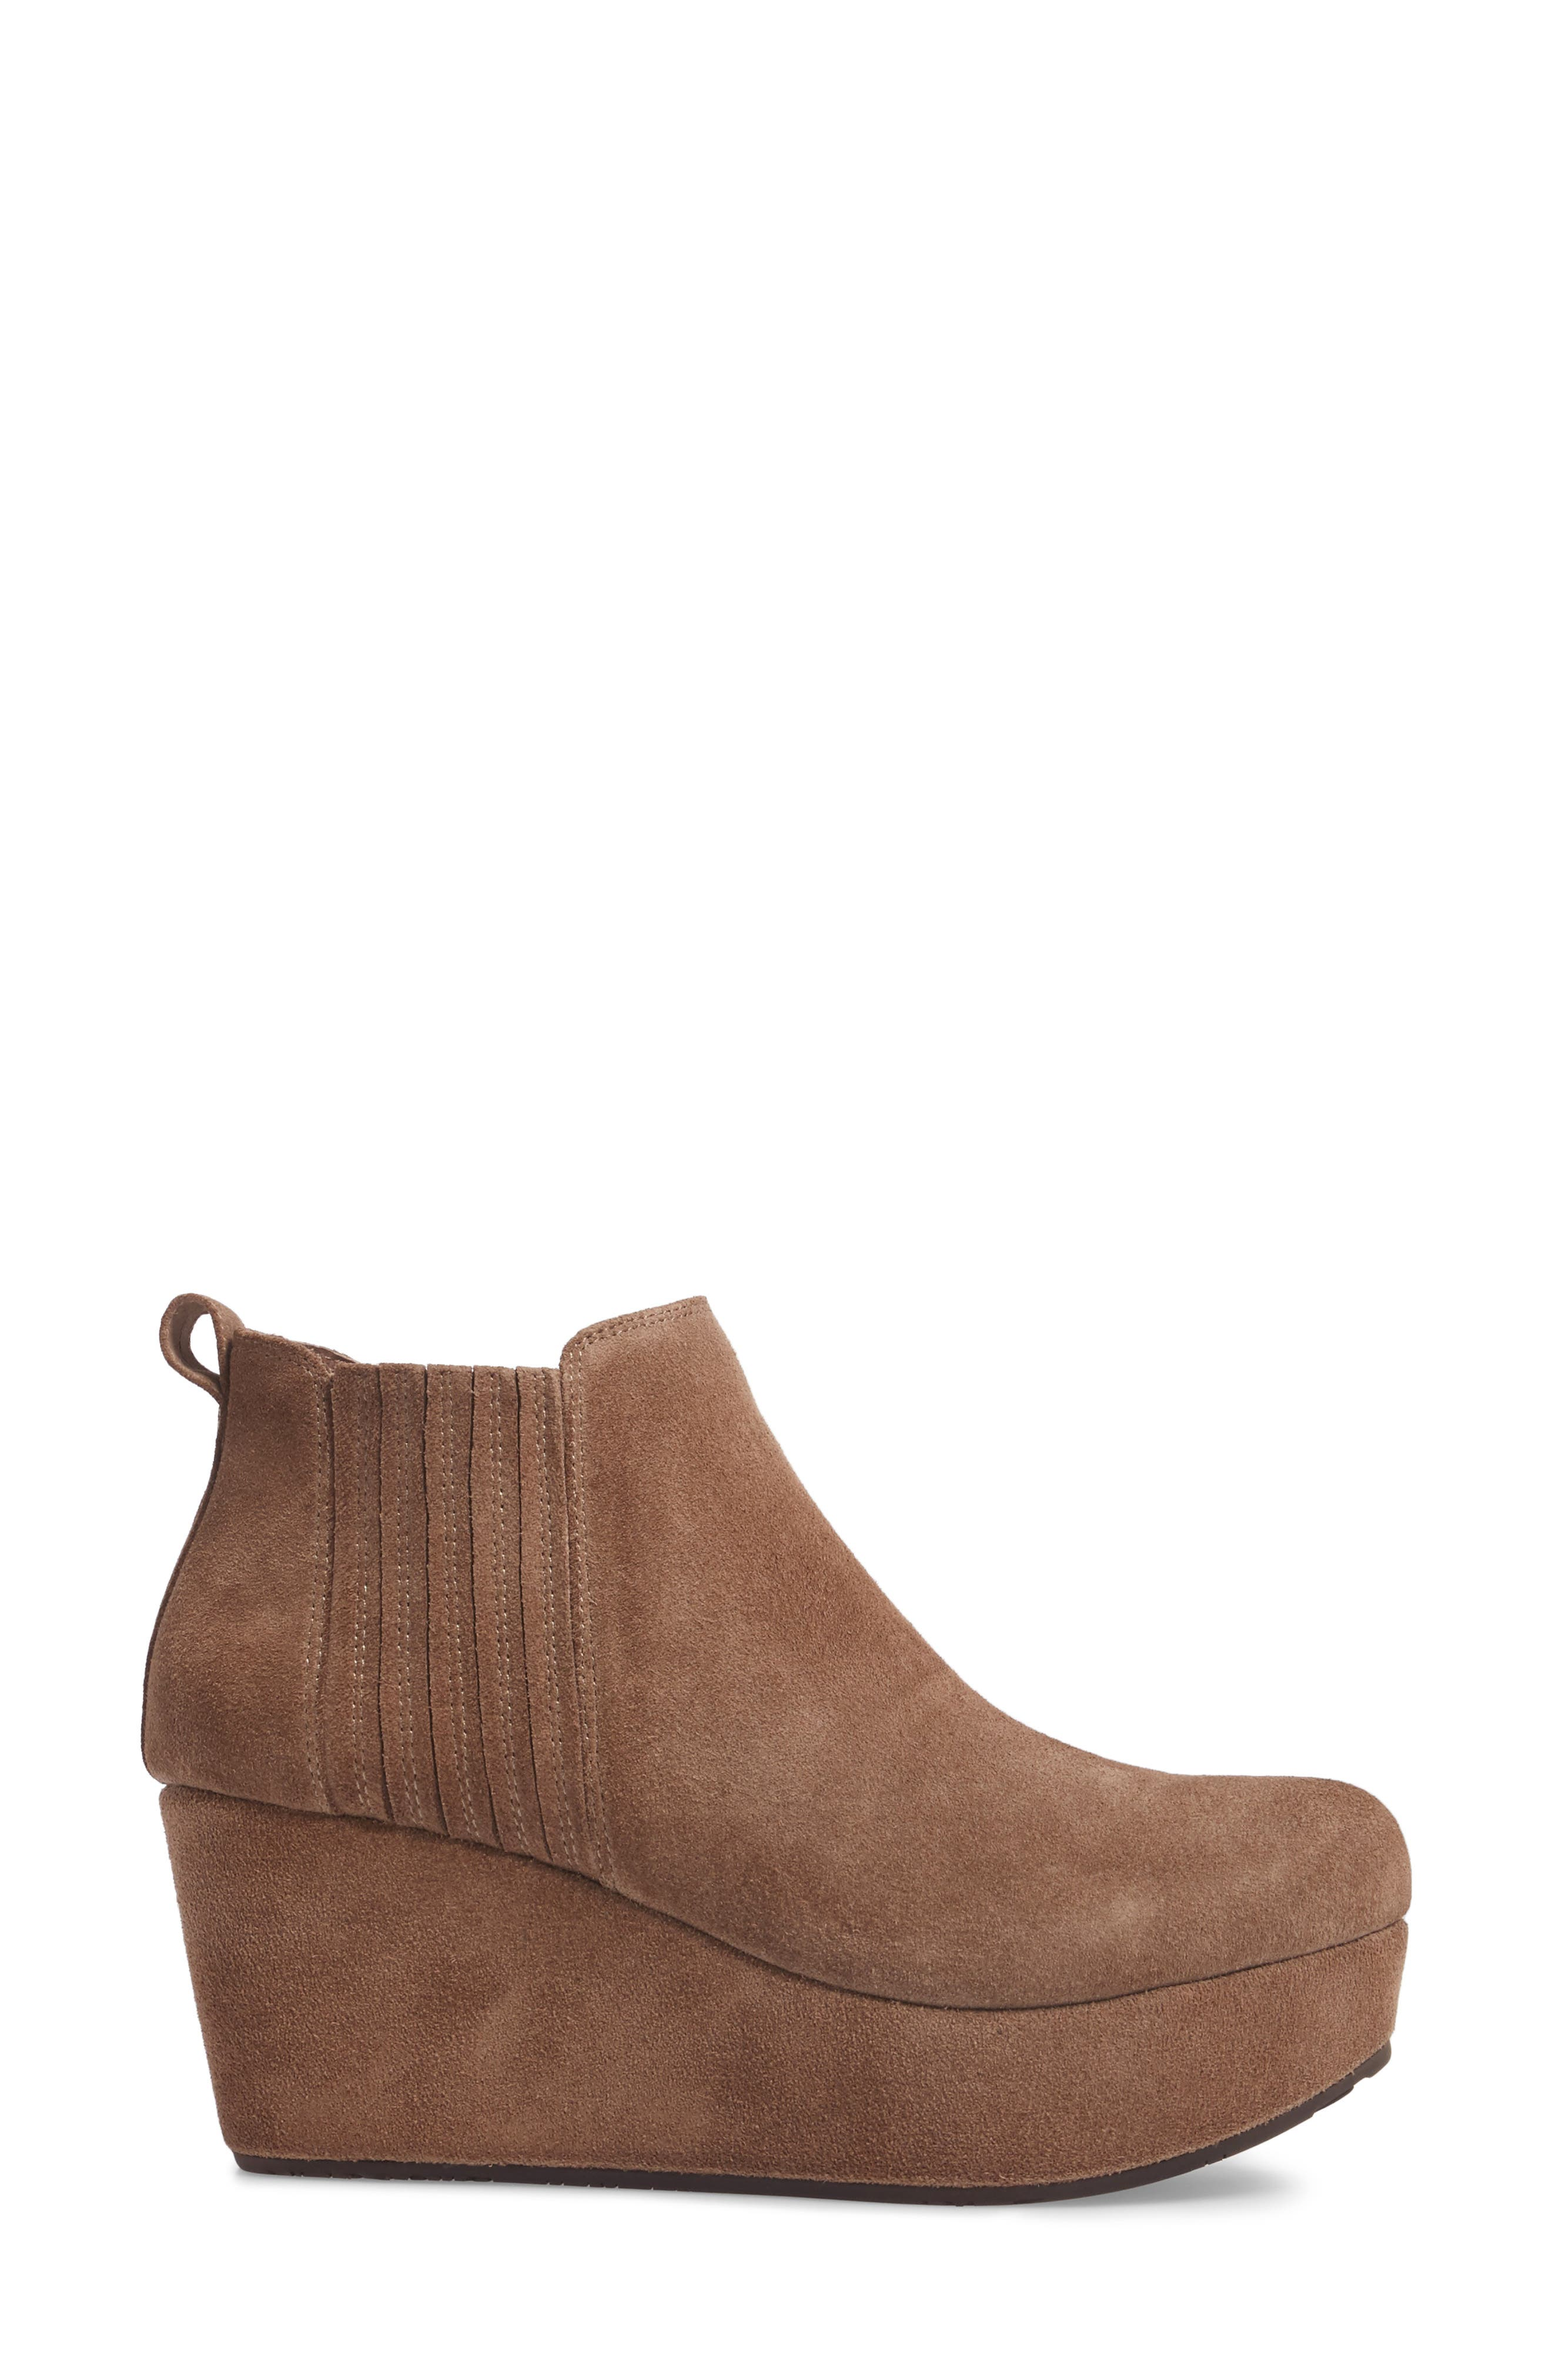 Walden Wedge Bootie,                             Alternate thumbnail 3, color,                             Taupe Suede